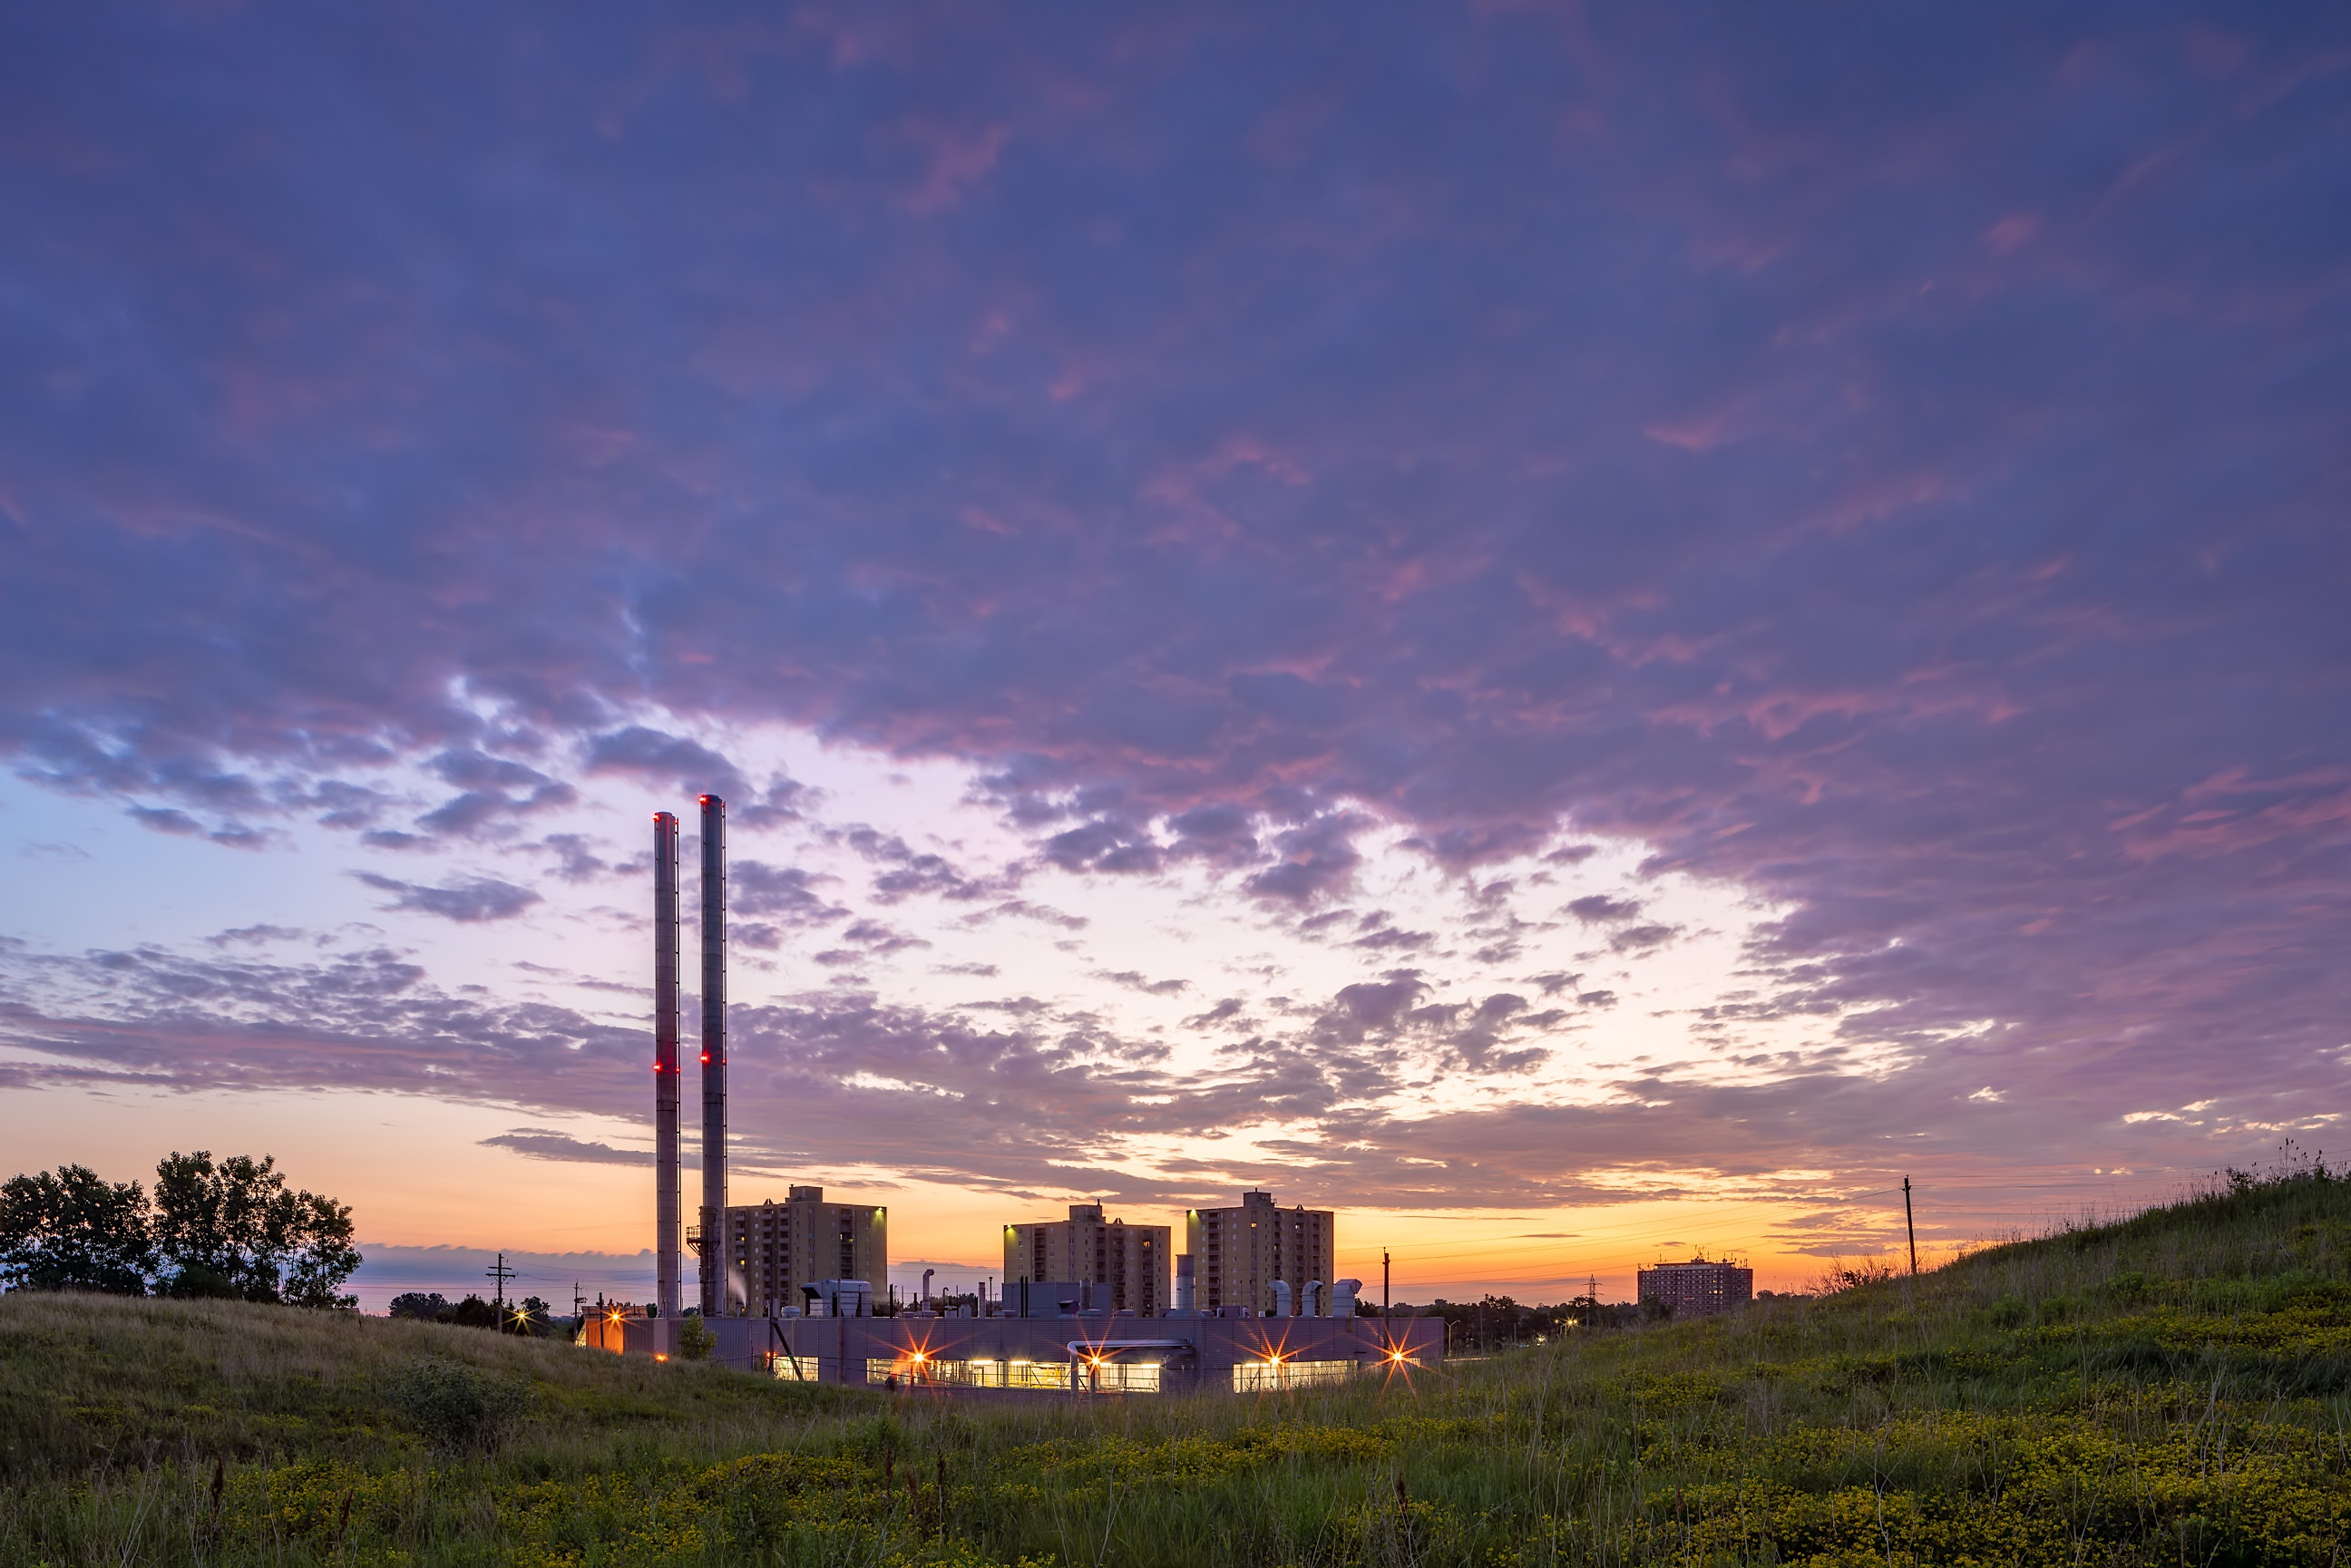 Victoria Hospital Heating Plant at Sunrise in London Ontario